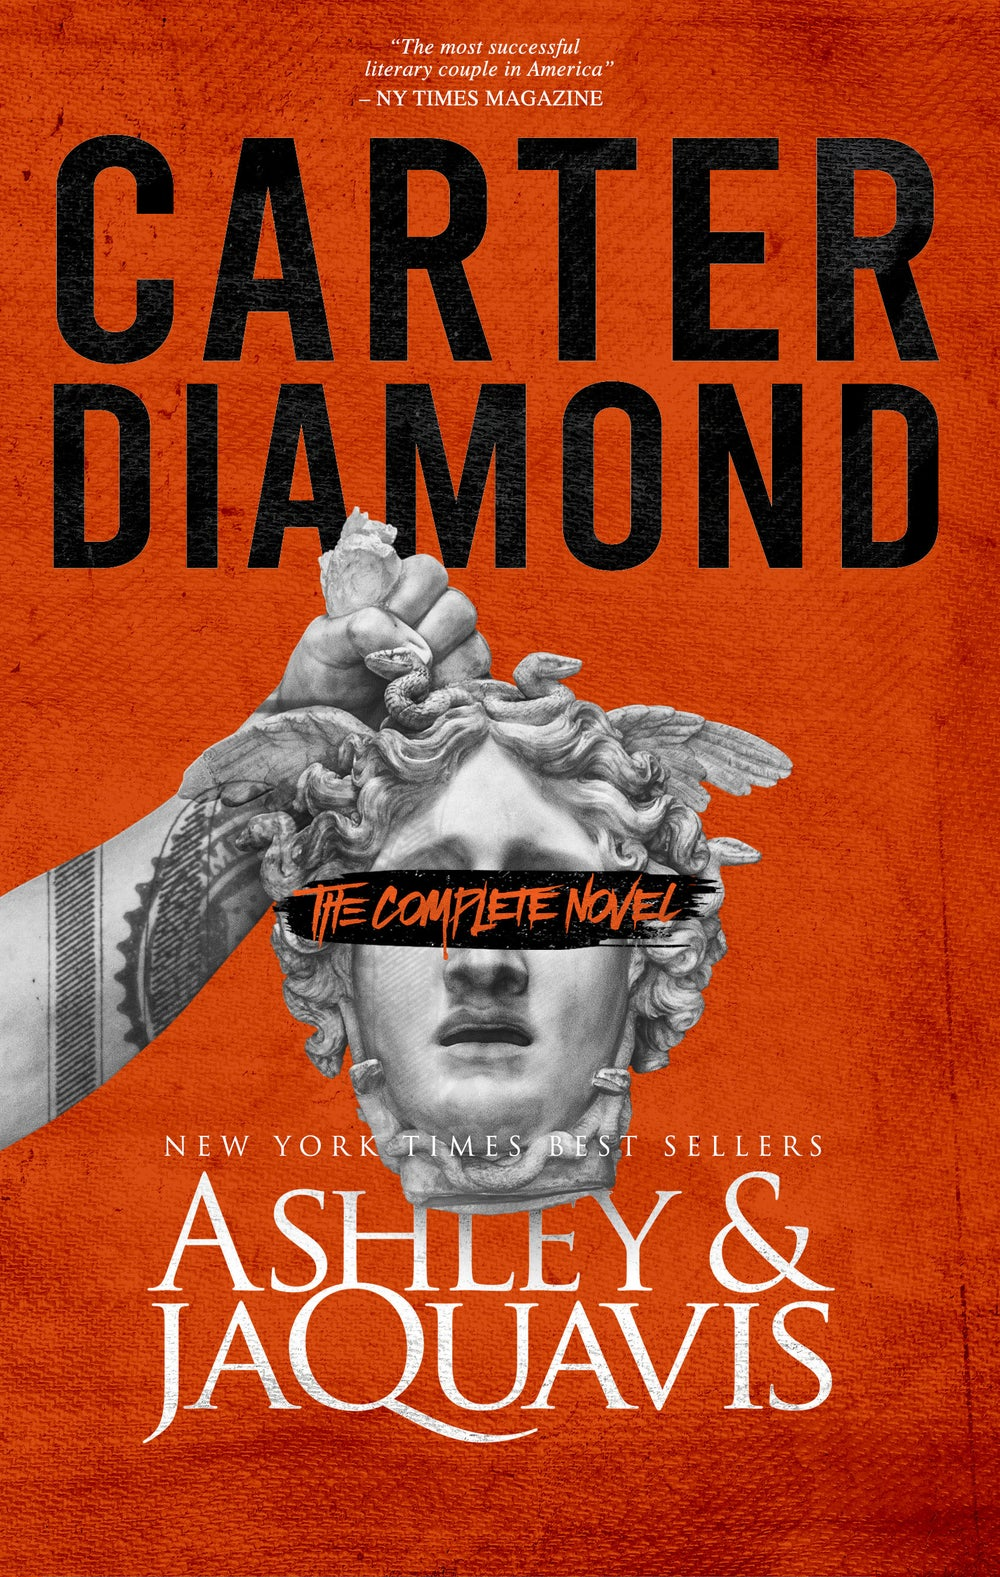 Image of     Carter Diamond :The  Full Novel